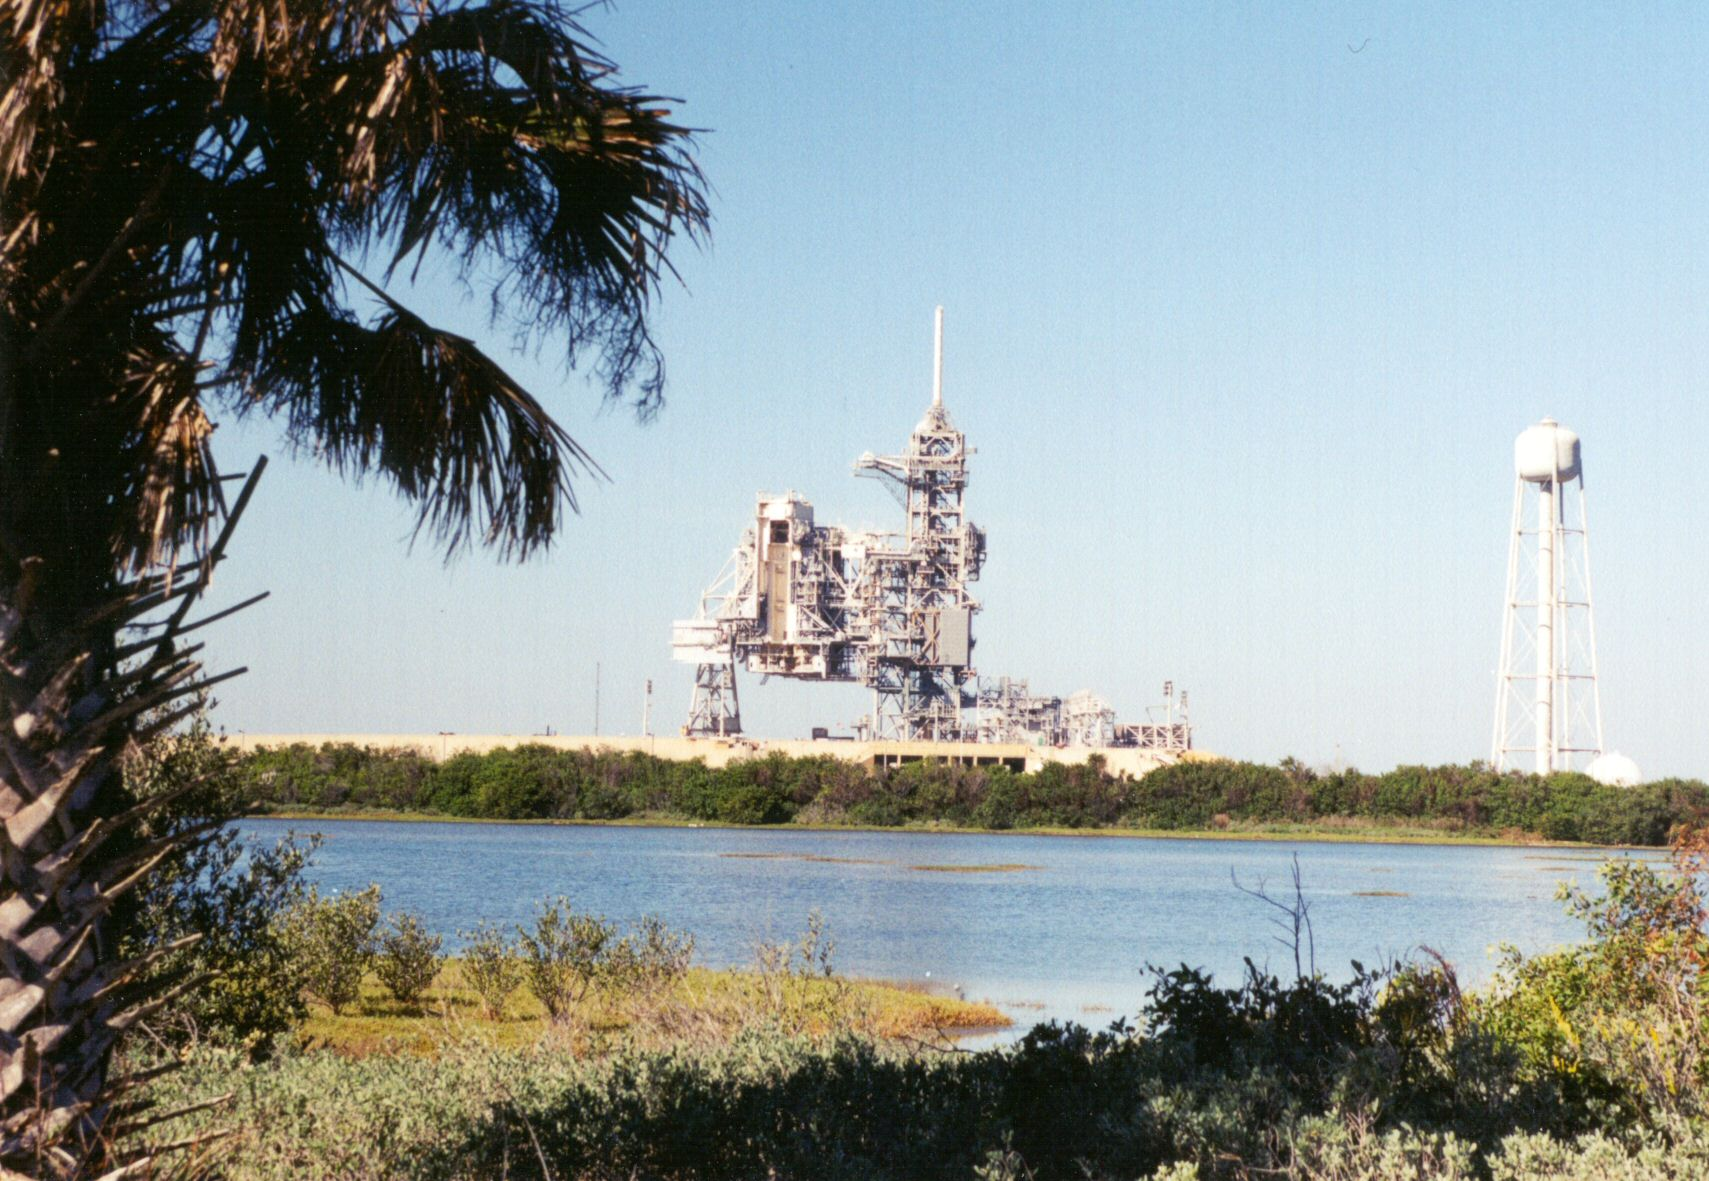 space shuttle on launchpad - photo #10